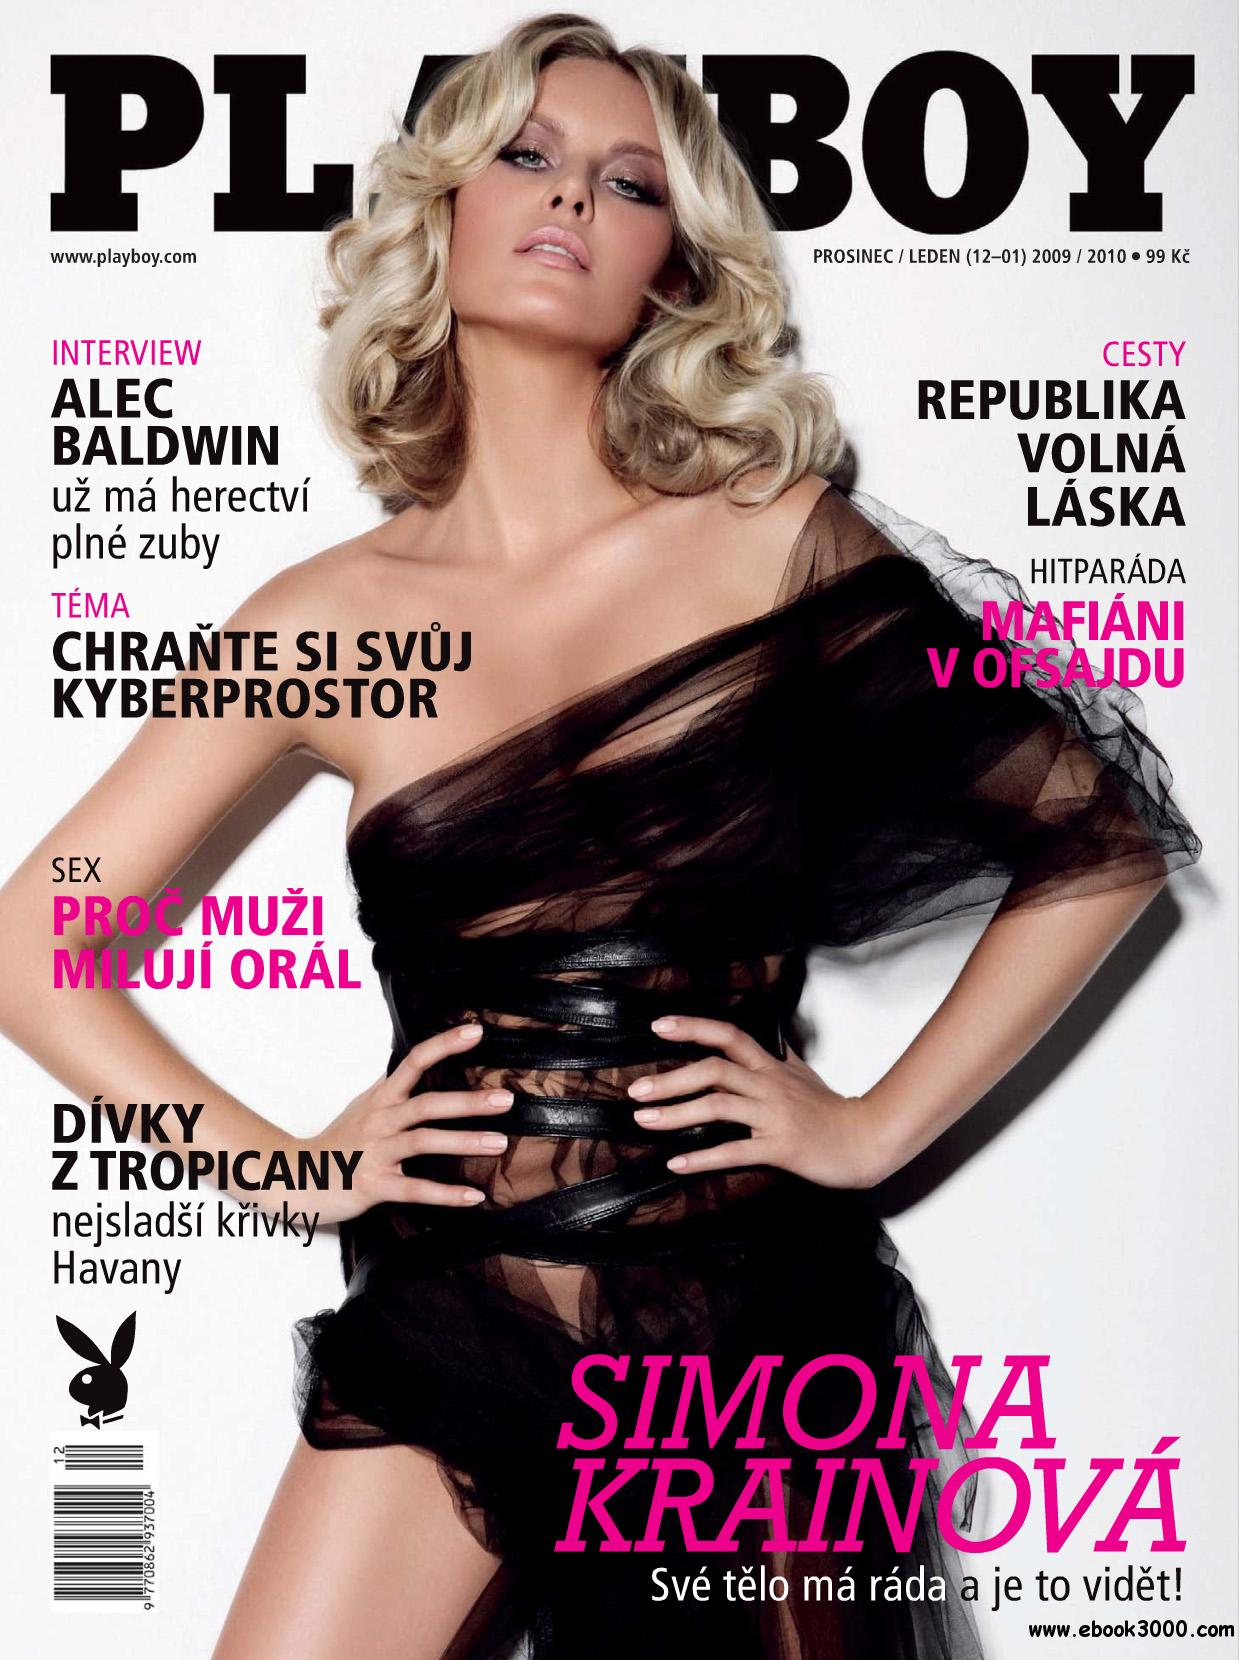 Playboy Czech - December 2009 / January 2010 free download